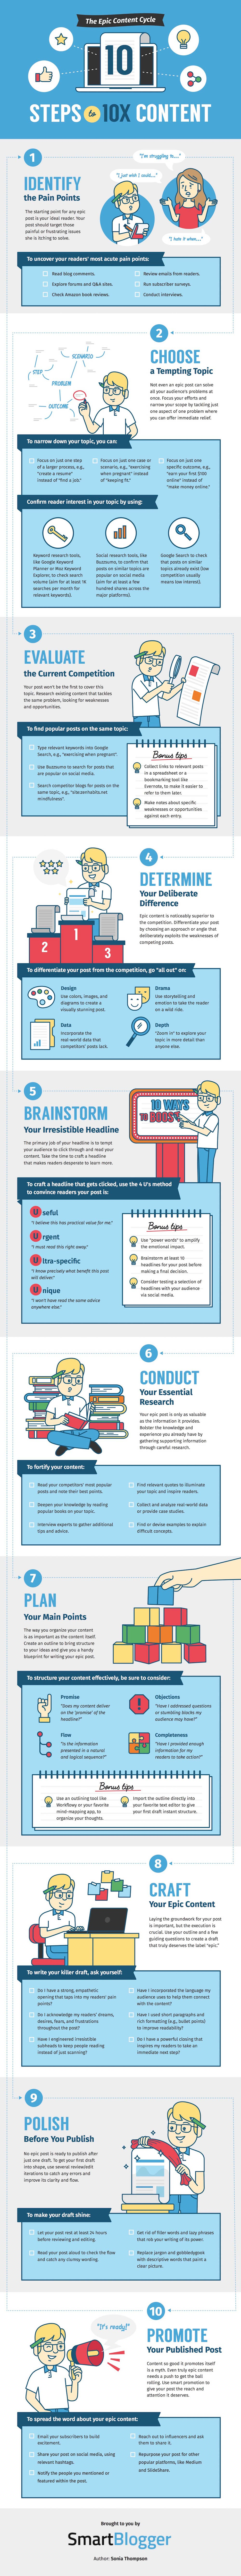 10 Steps to Create Epic Content